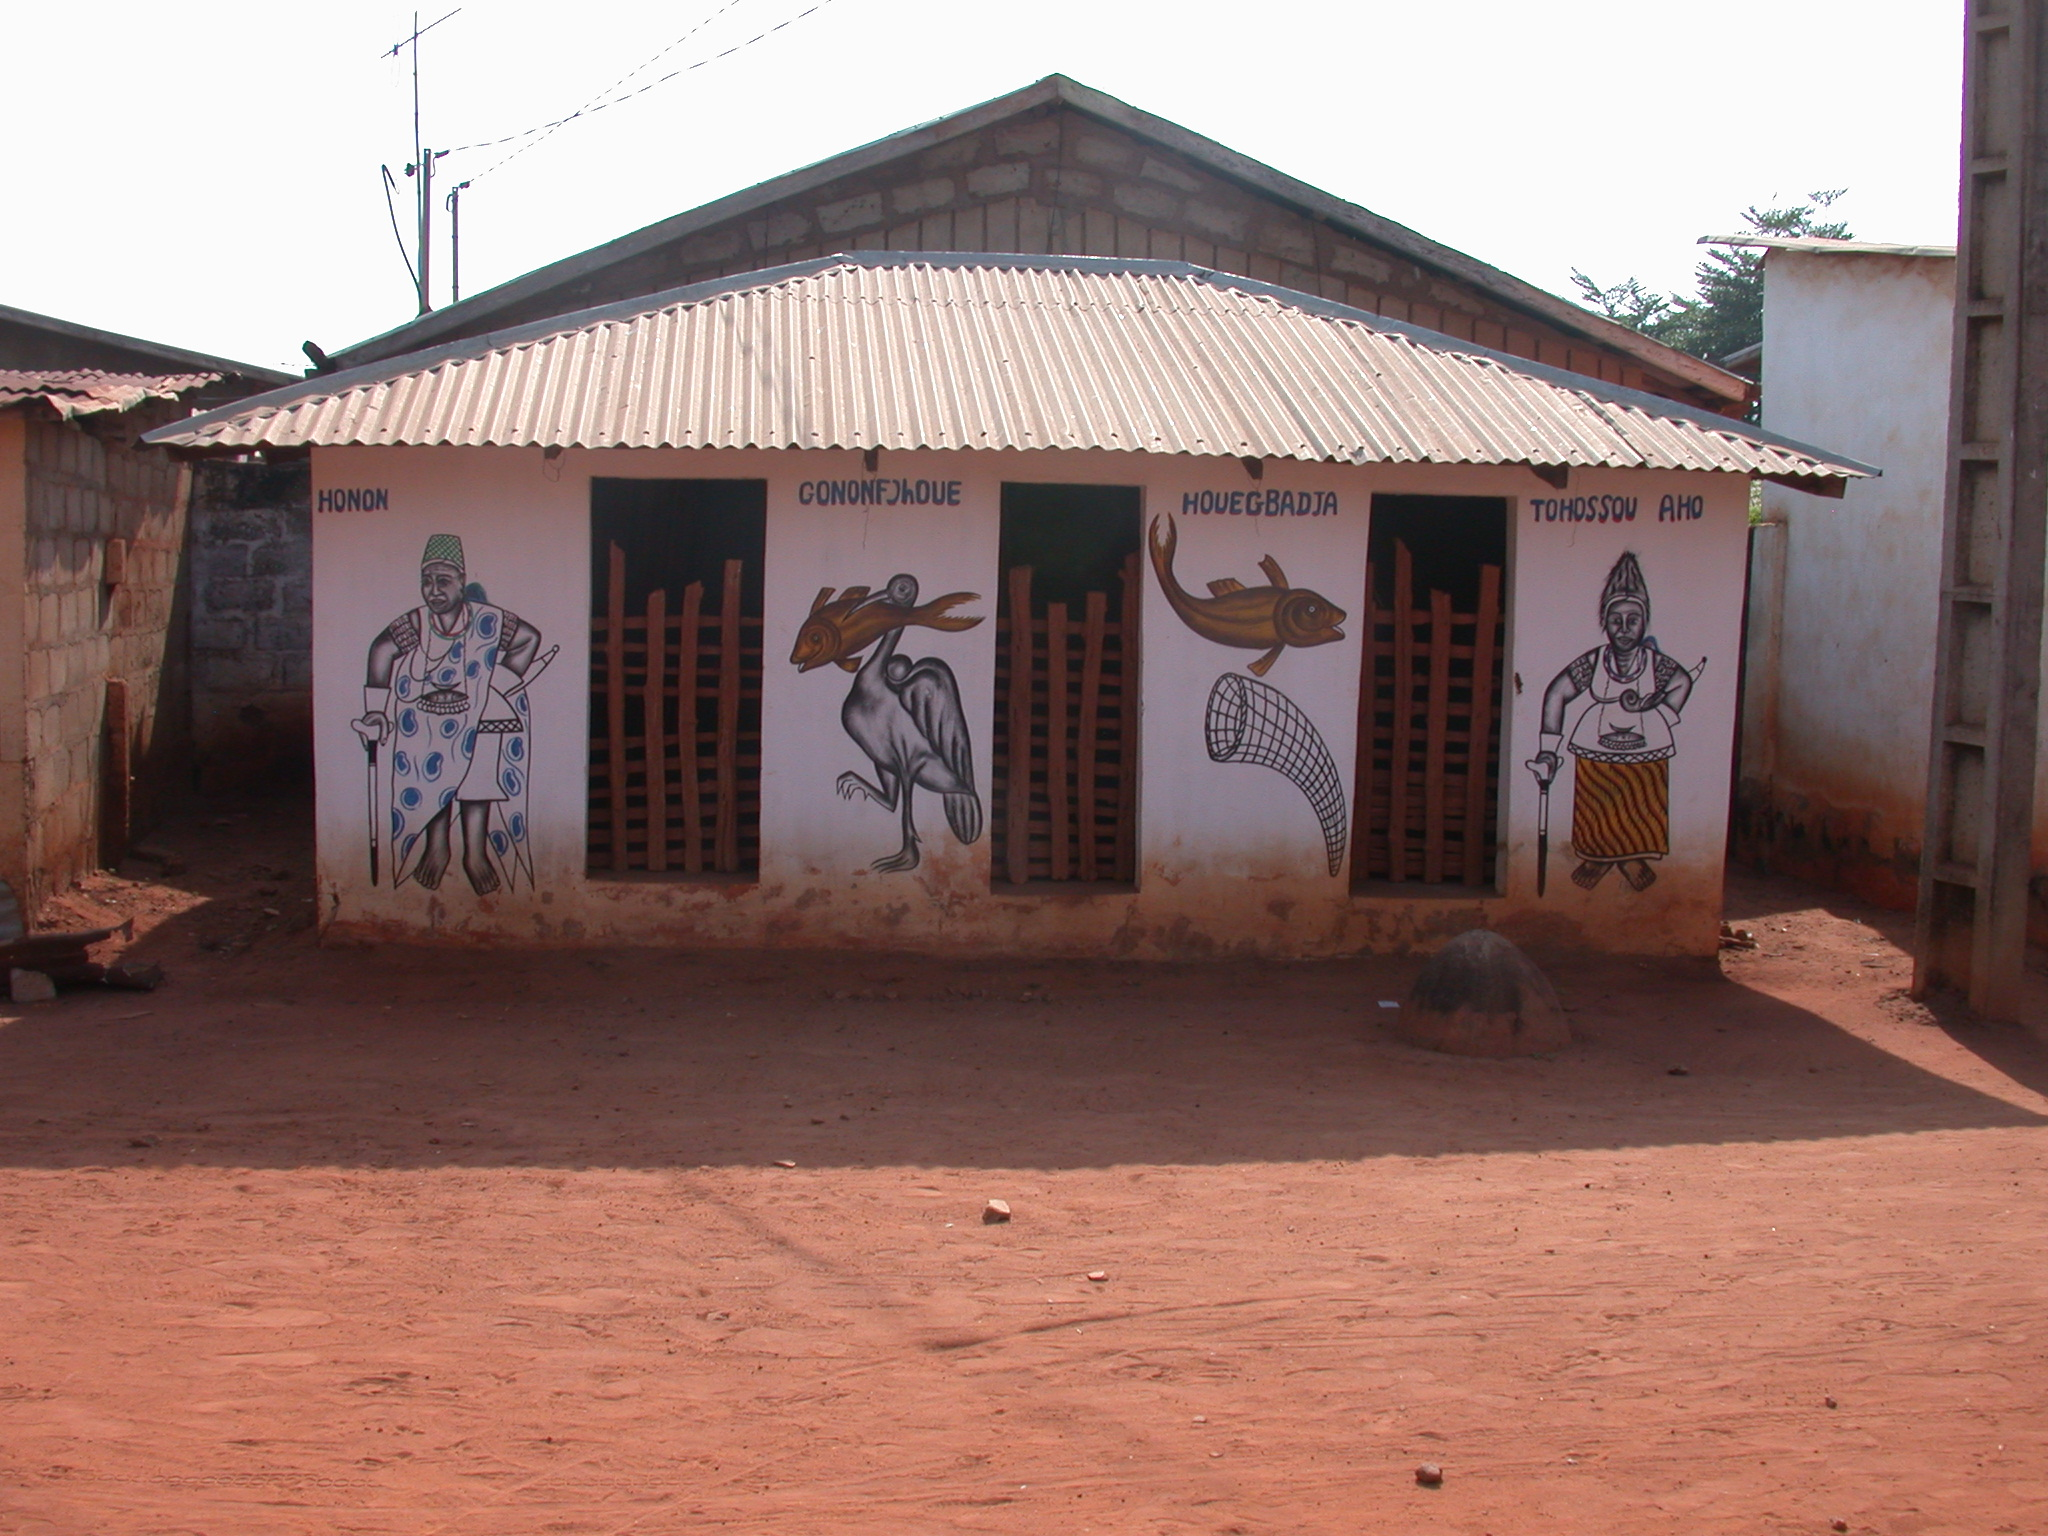 House Mentioning Third Dahomey King Houegbadja and Honon, Cononfjhoue,  and Tohossou Aho, Abomey, Benin